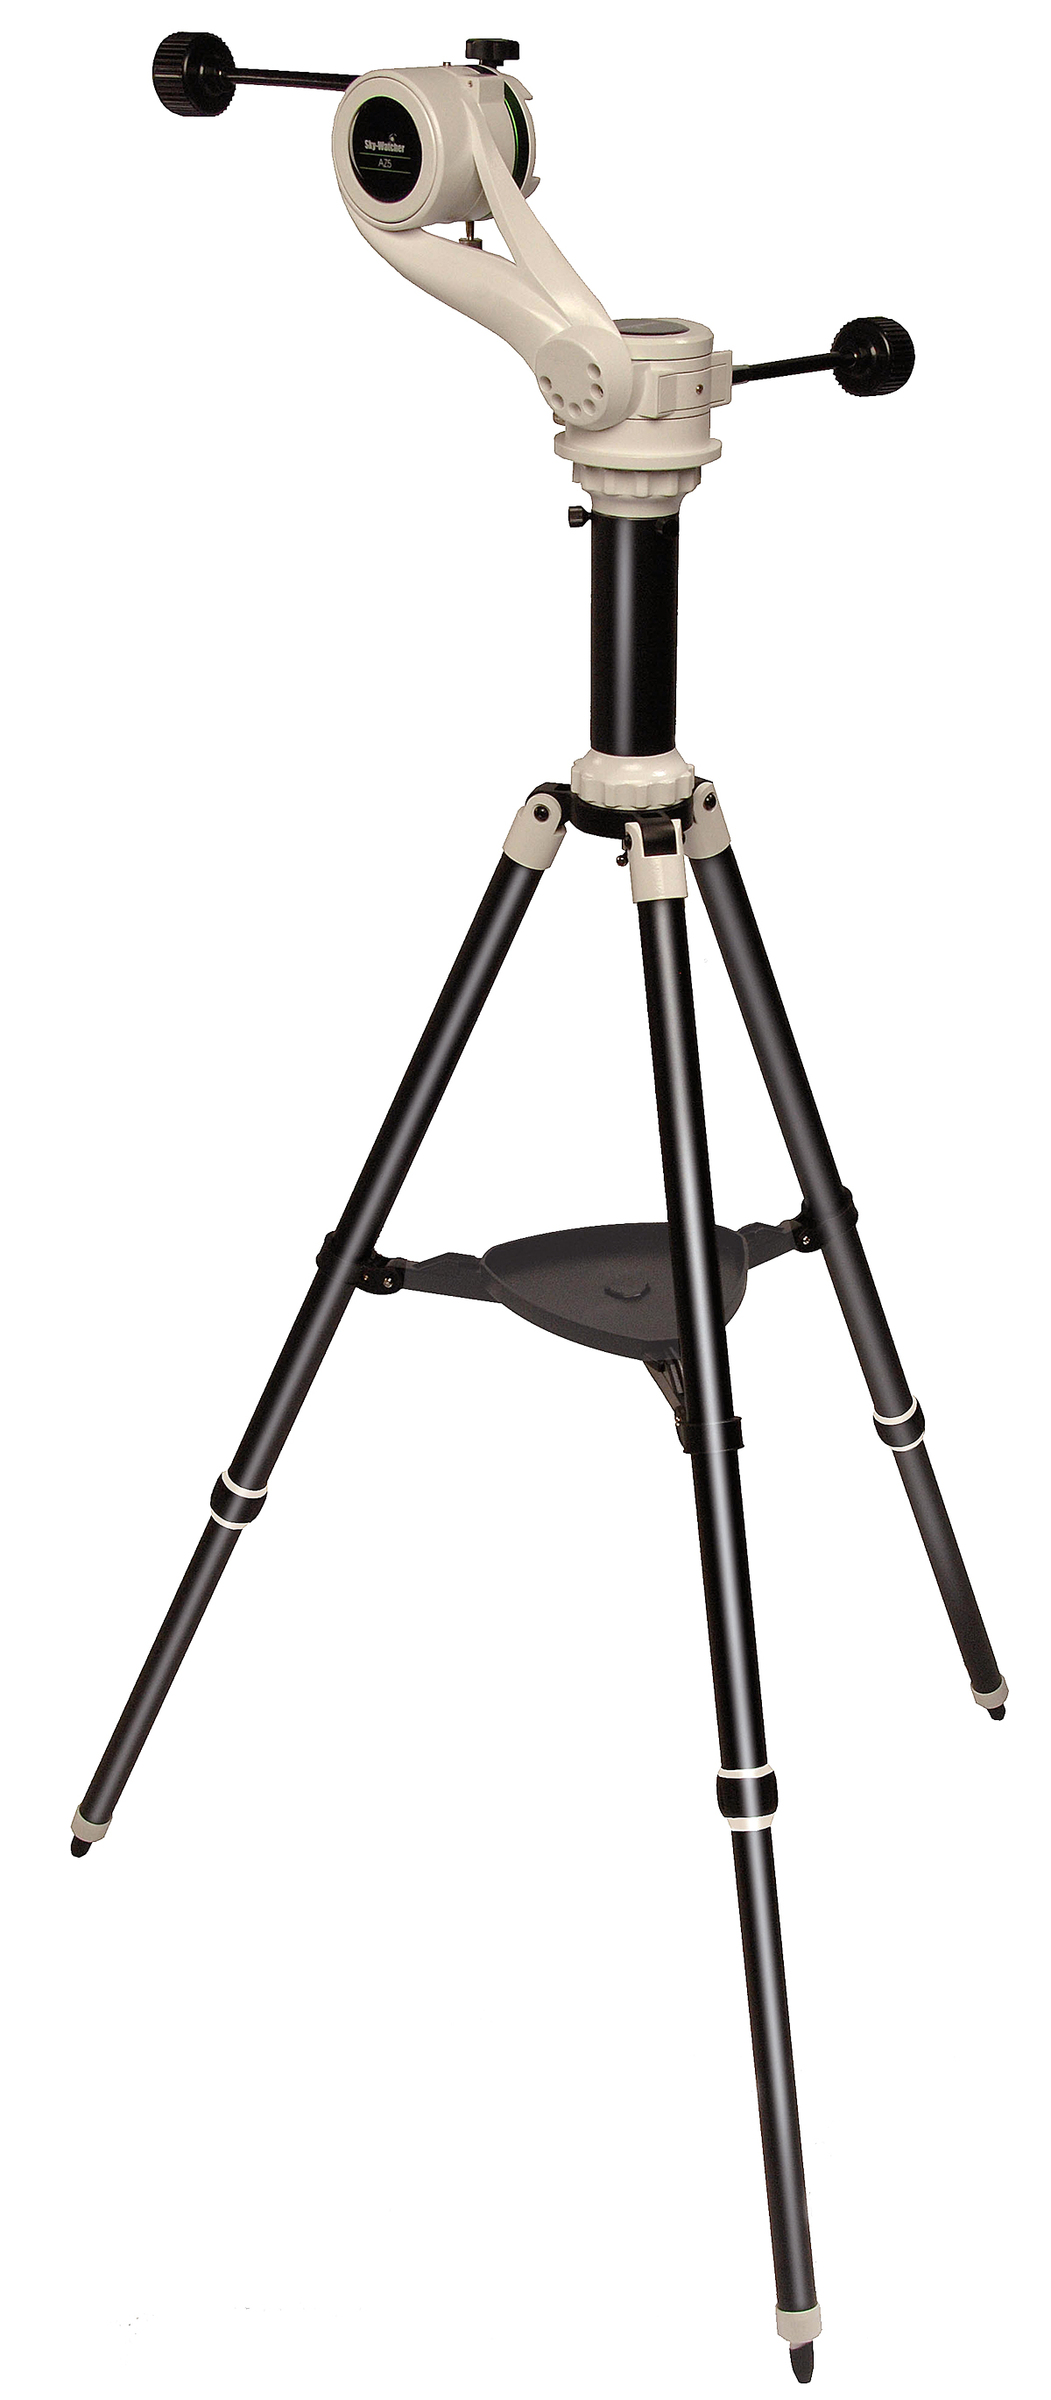 Skywatcher_AZ5_Deluxe_ALT-AZ_Mount_head_20312[3].jpg